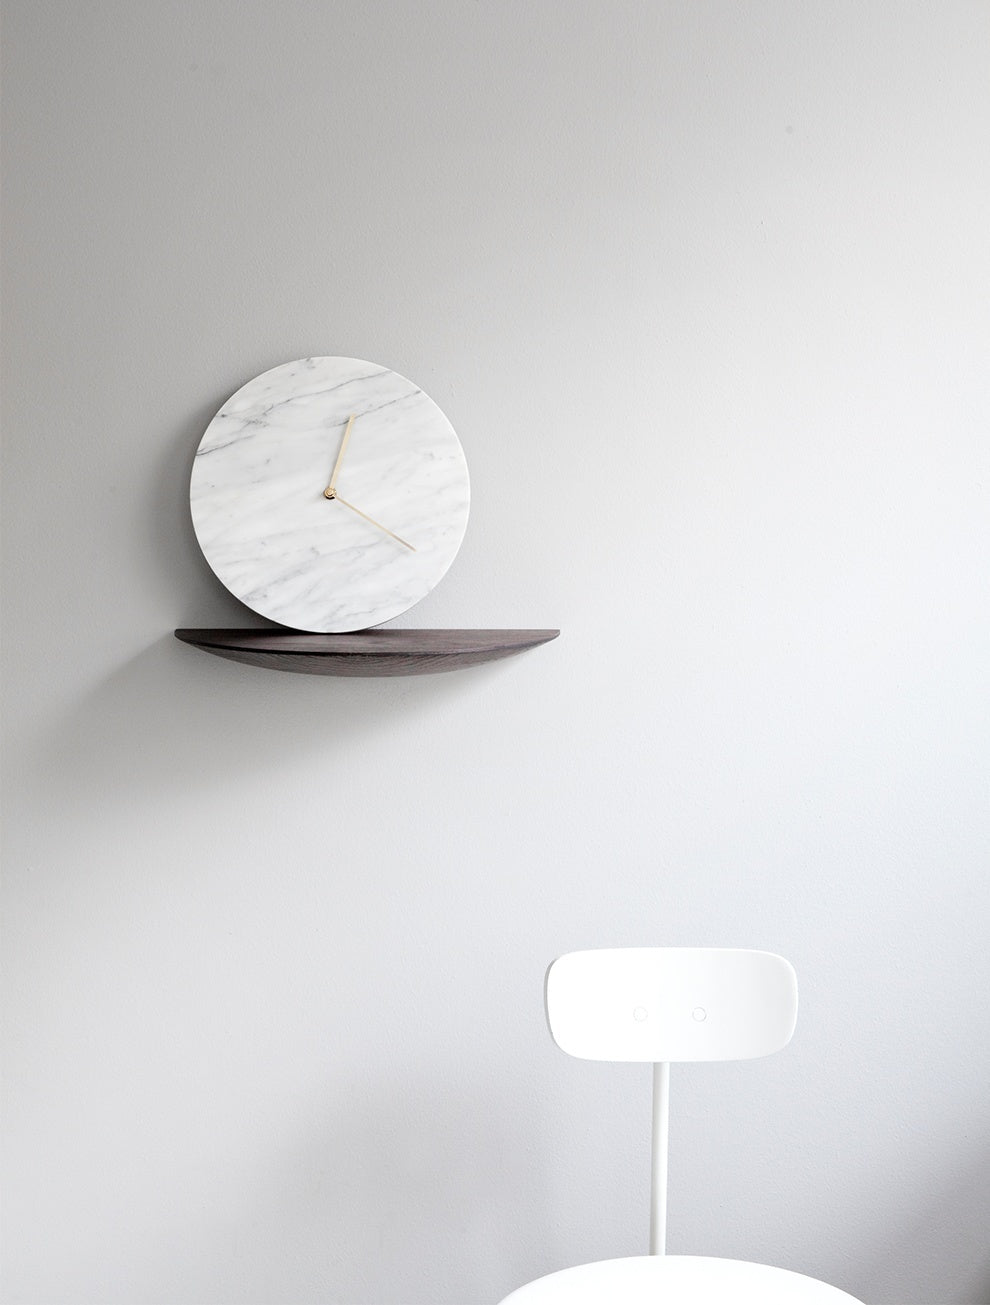 MENU Marble Wall Clock, White - Eclectic Cool  - 4